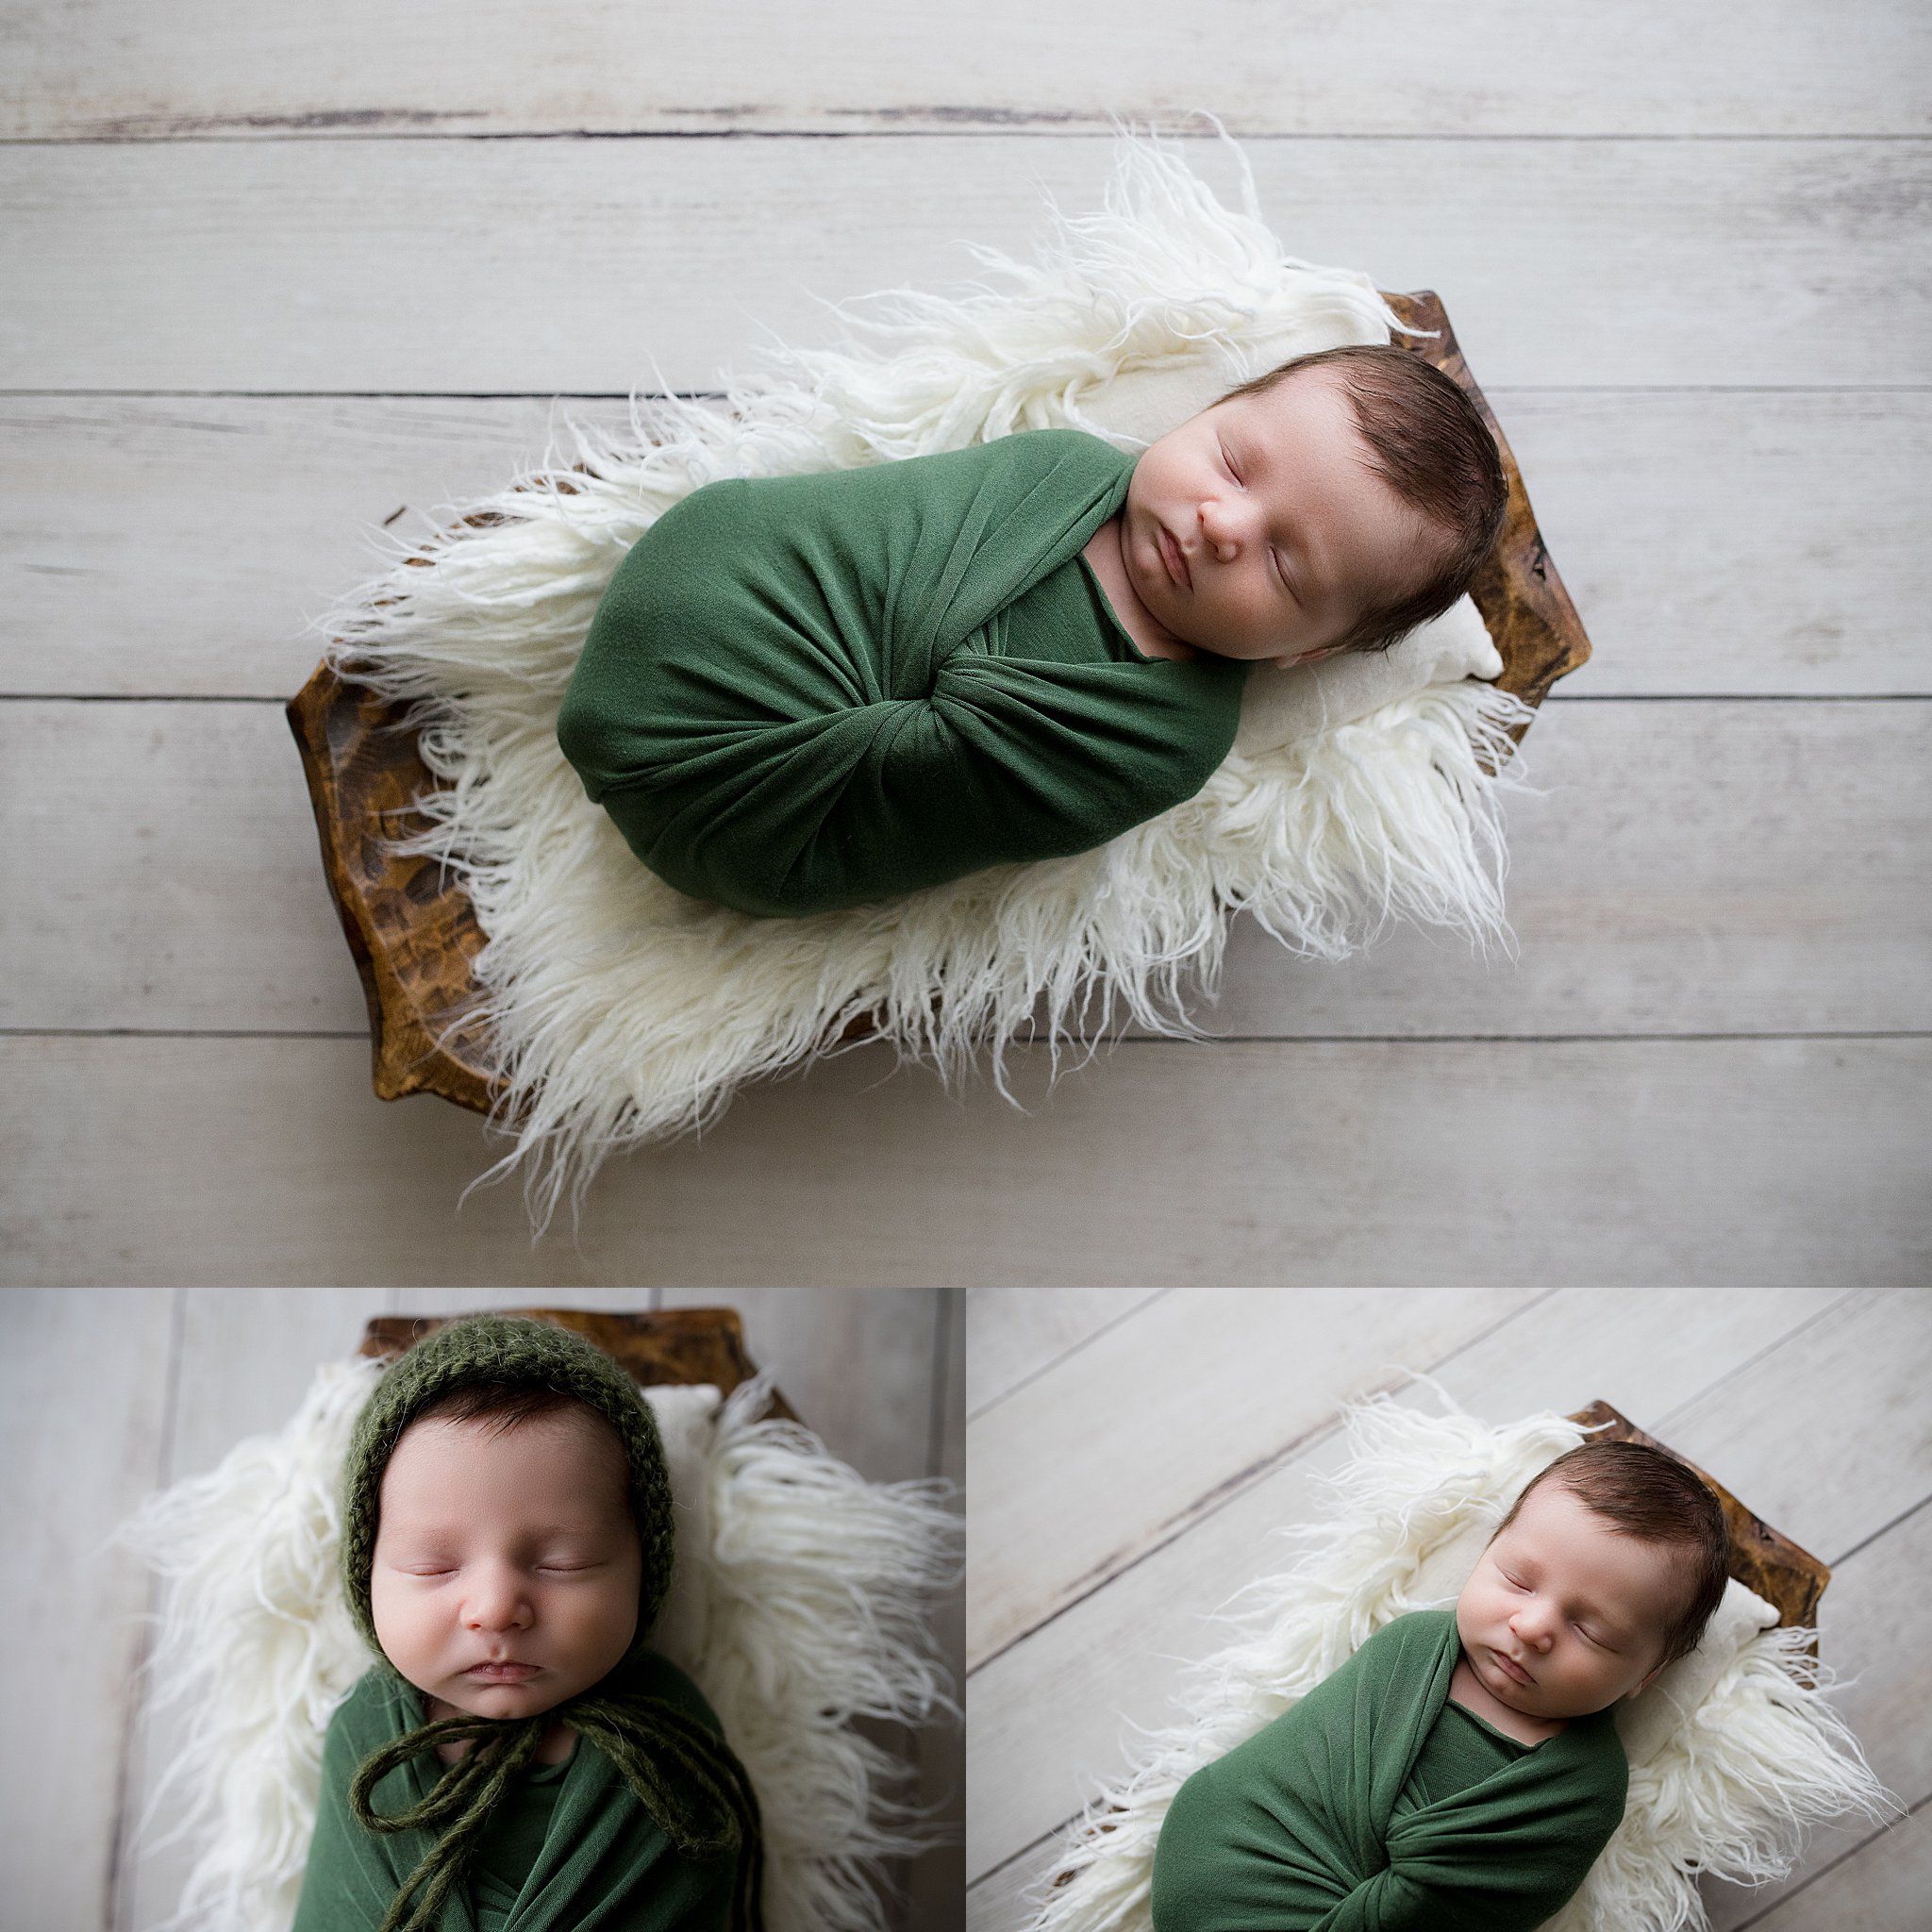 Newborn baby boy wrapped in green and sleeping during a newborn photo session in Cedar Rapids, Iowa with Laura Anne Photography.